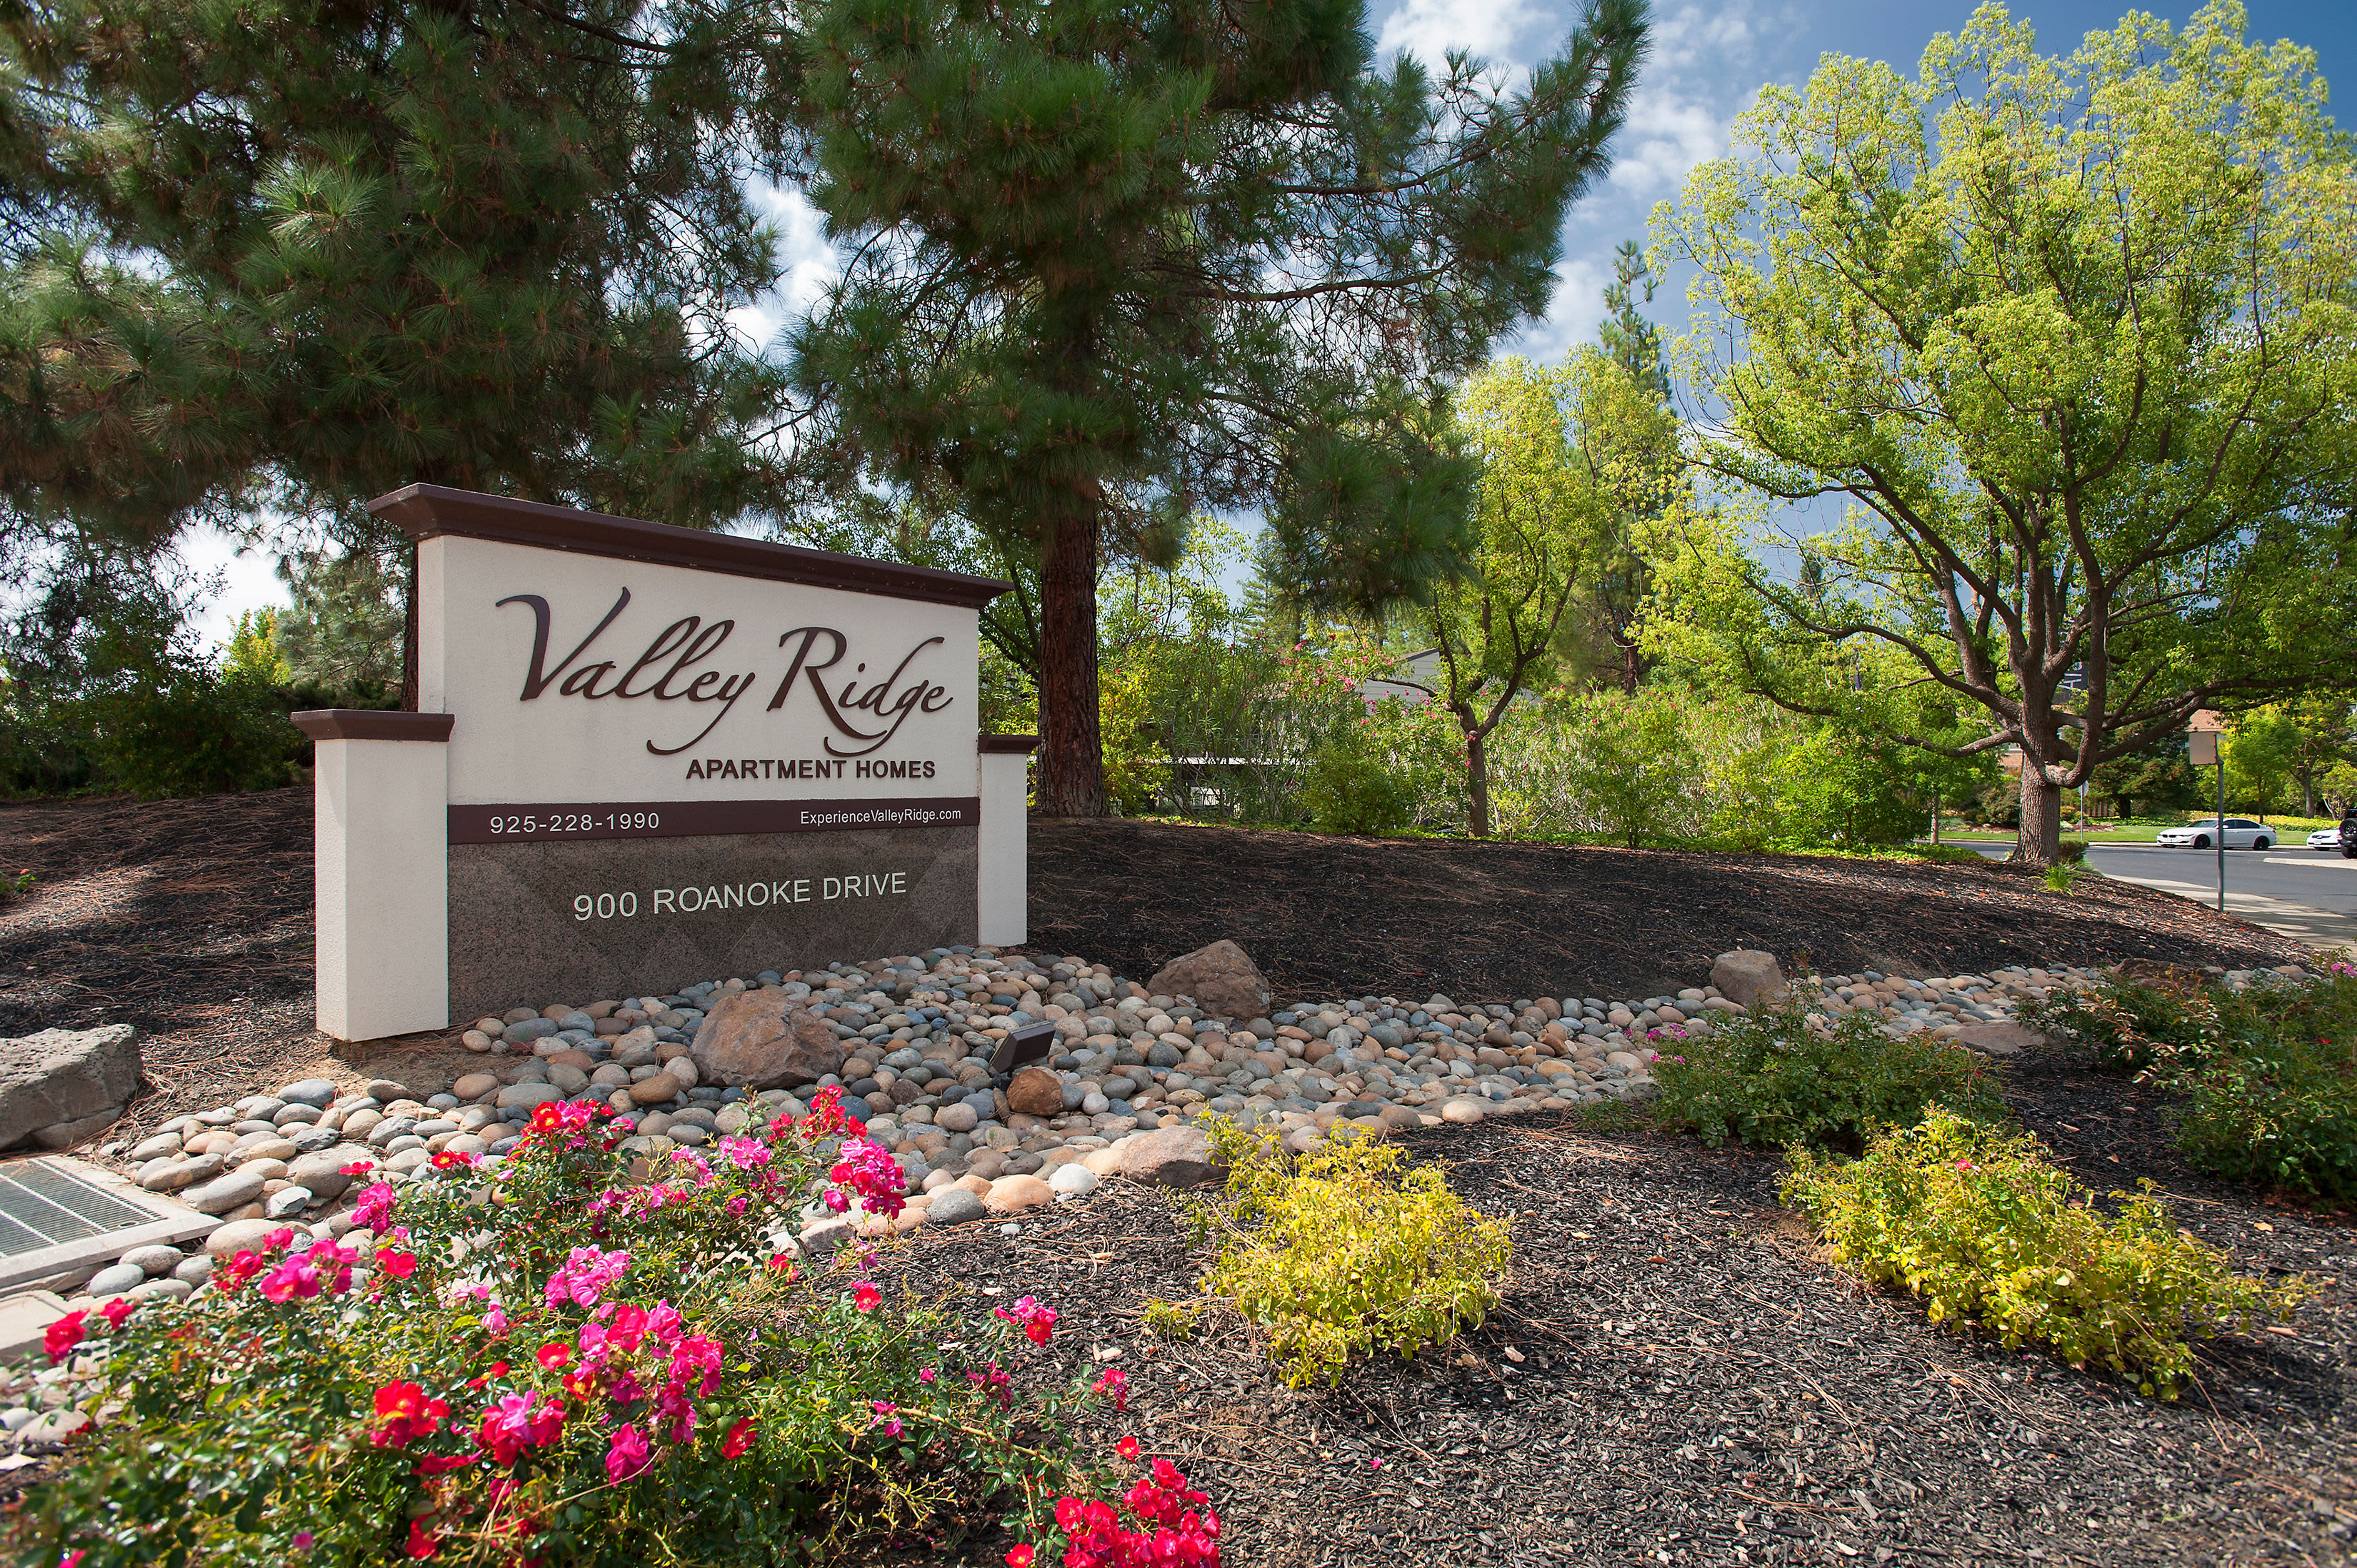 Valley Ridge Apartment Homes in Martinez, California